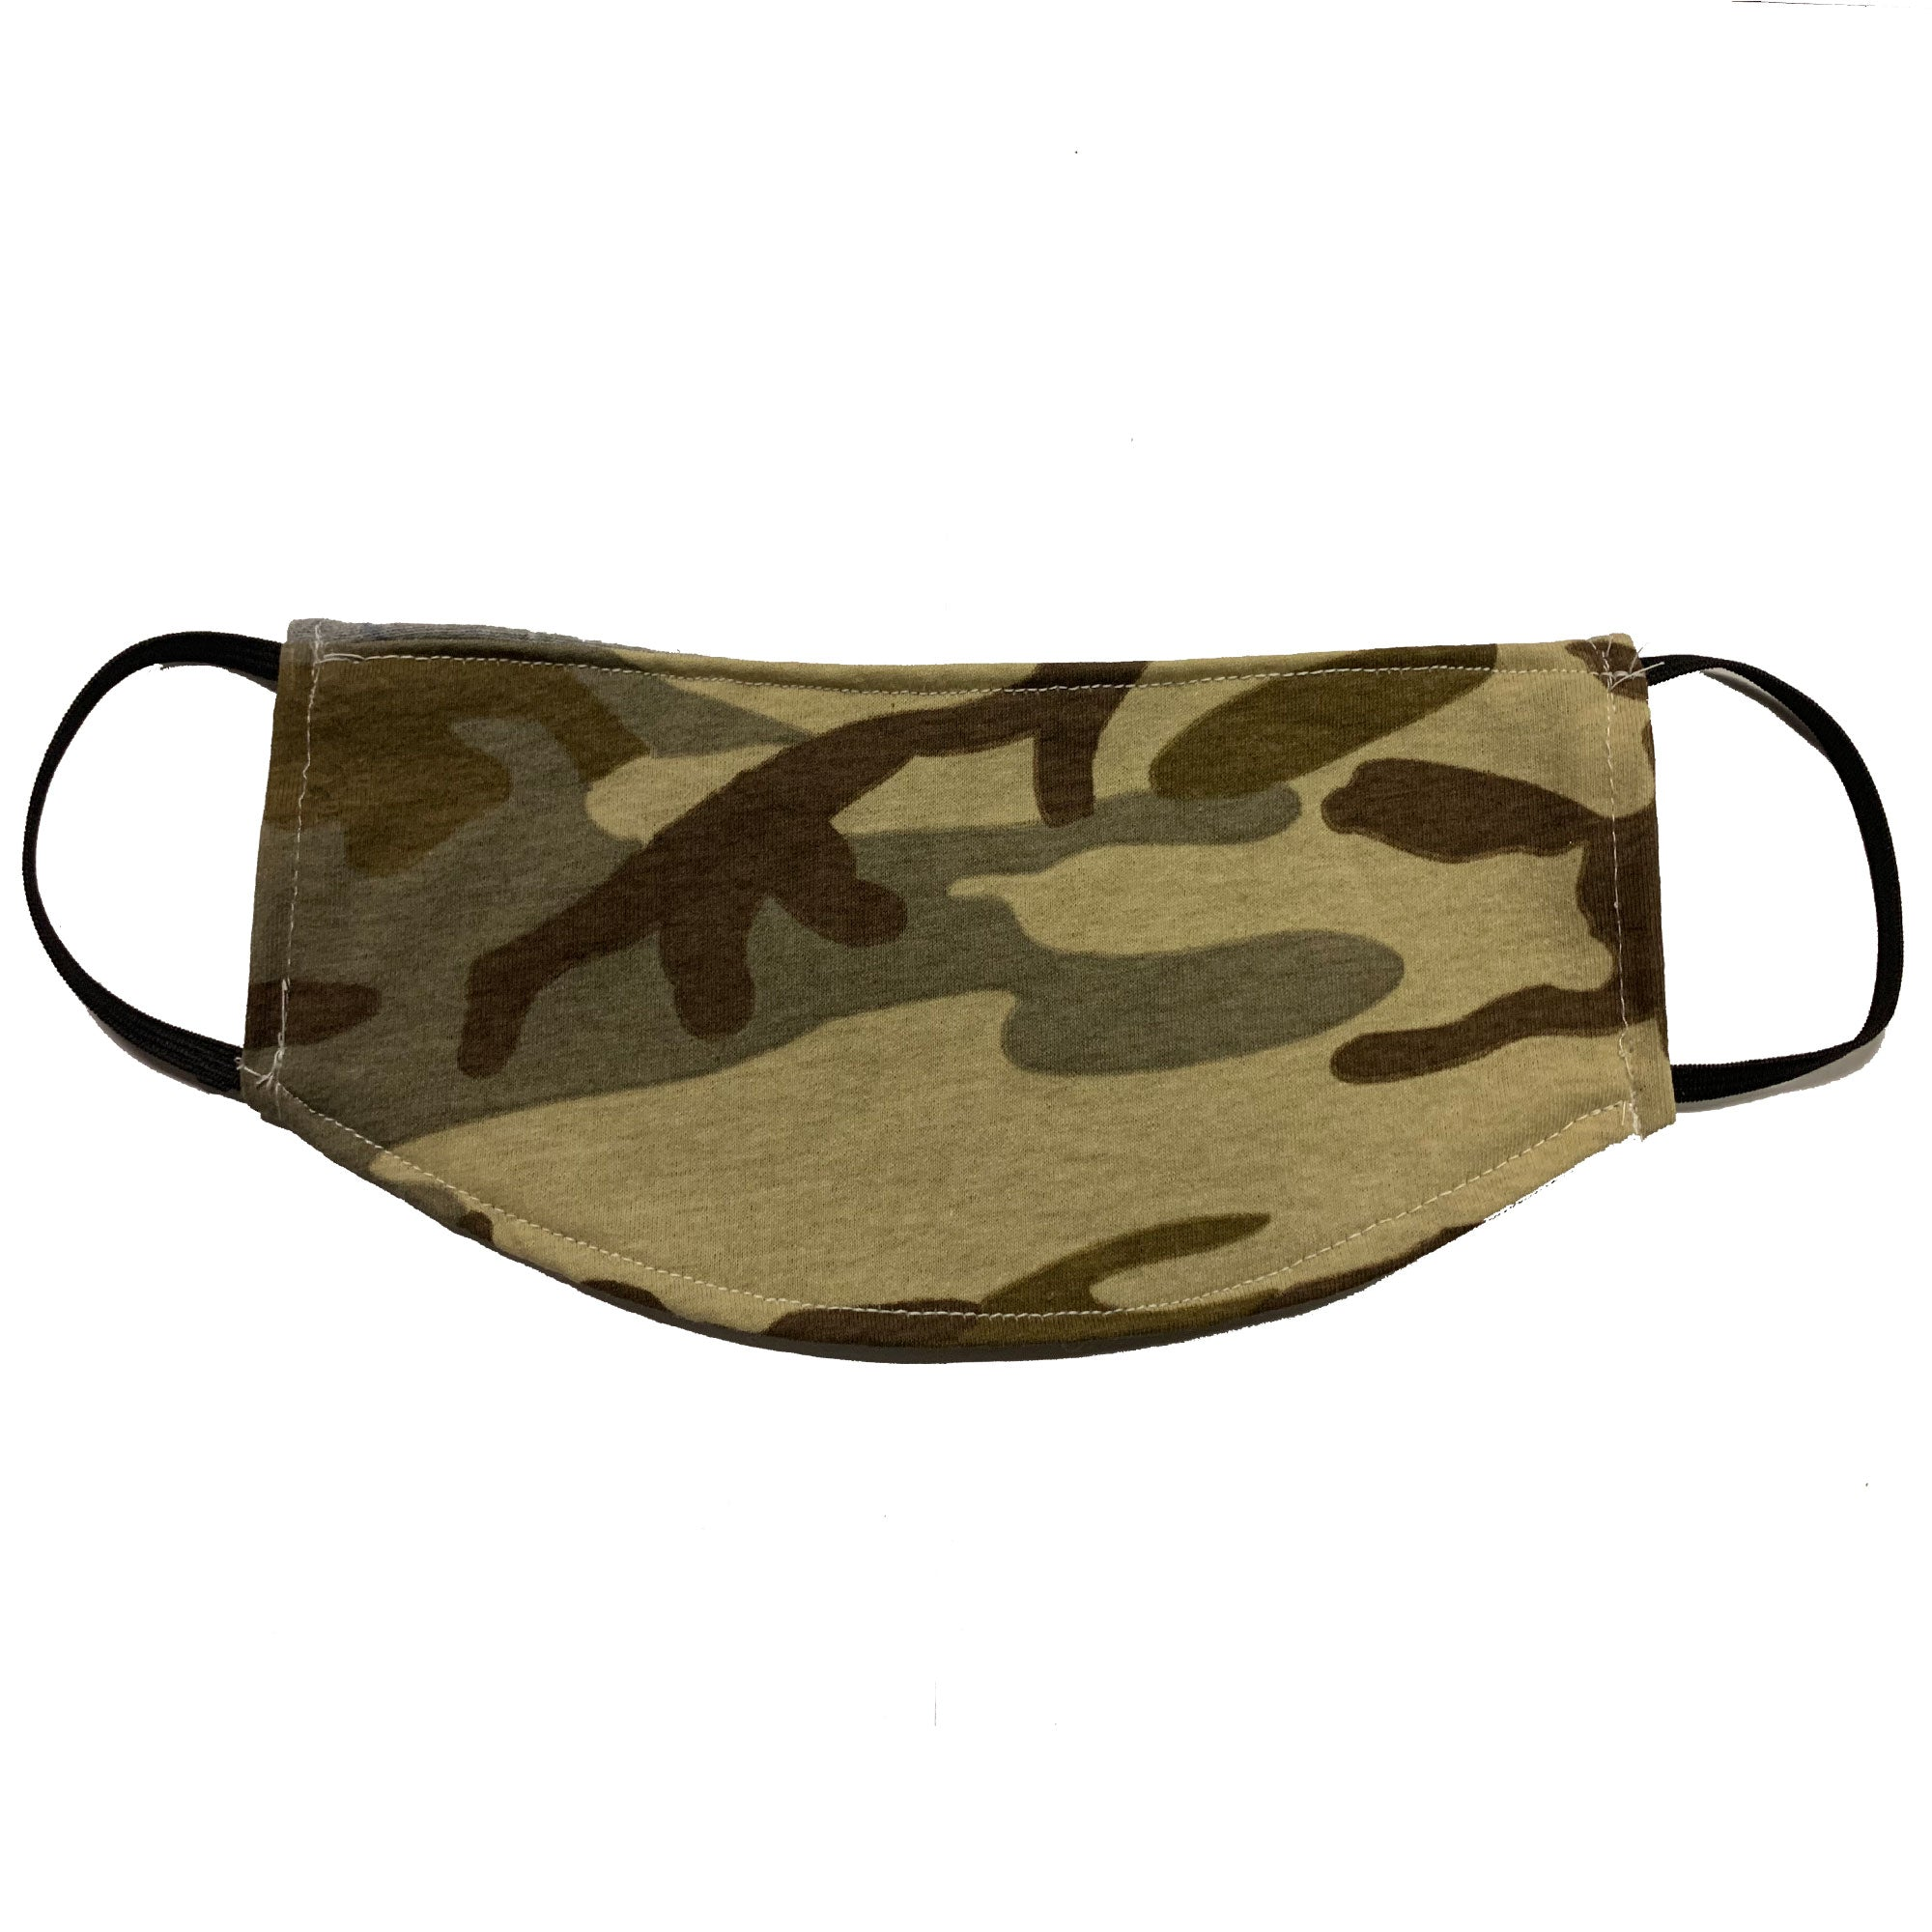 Adult Face Mask - Desert Camo Design